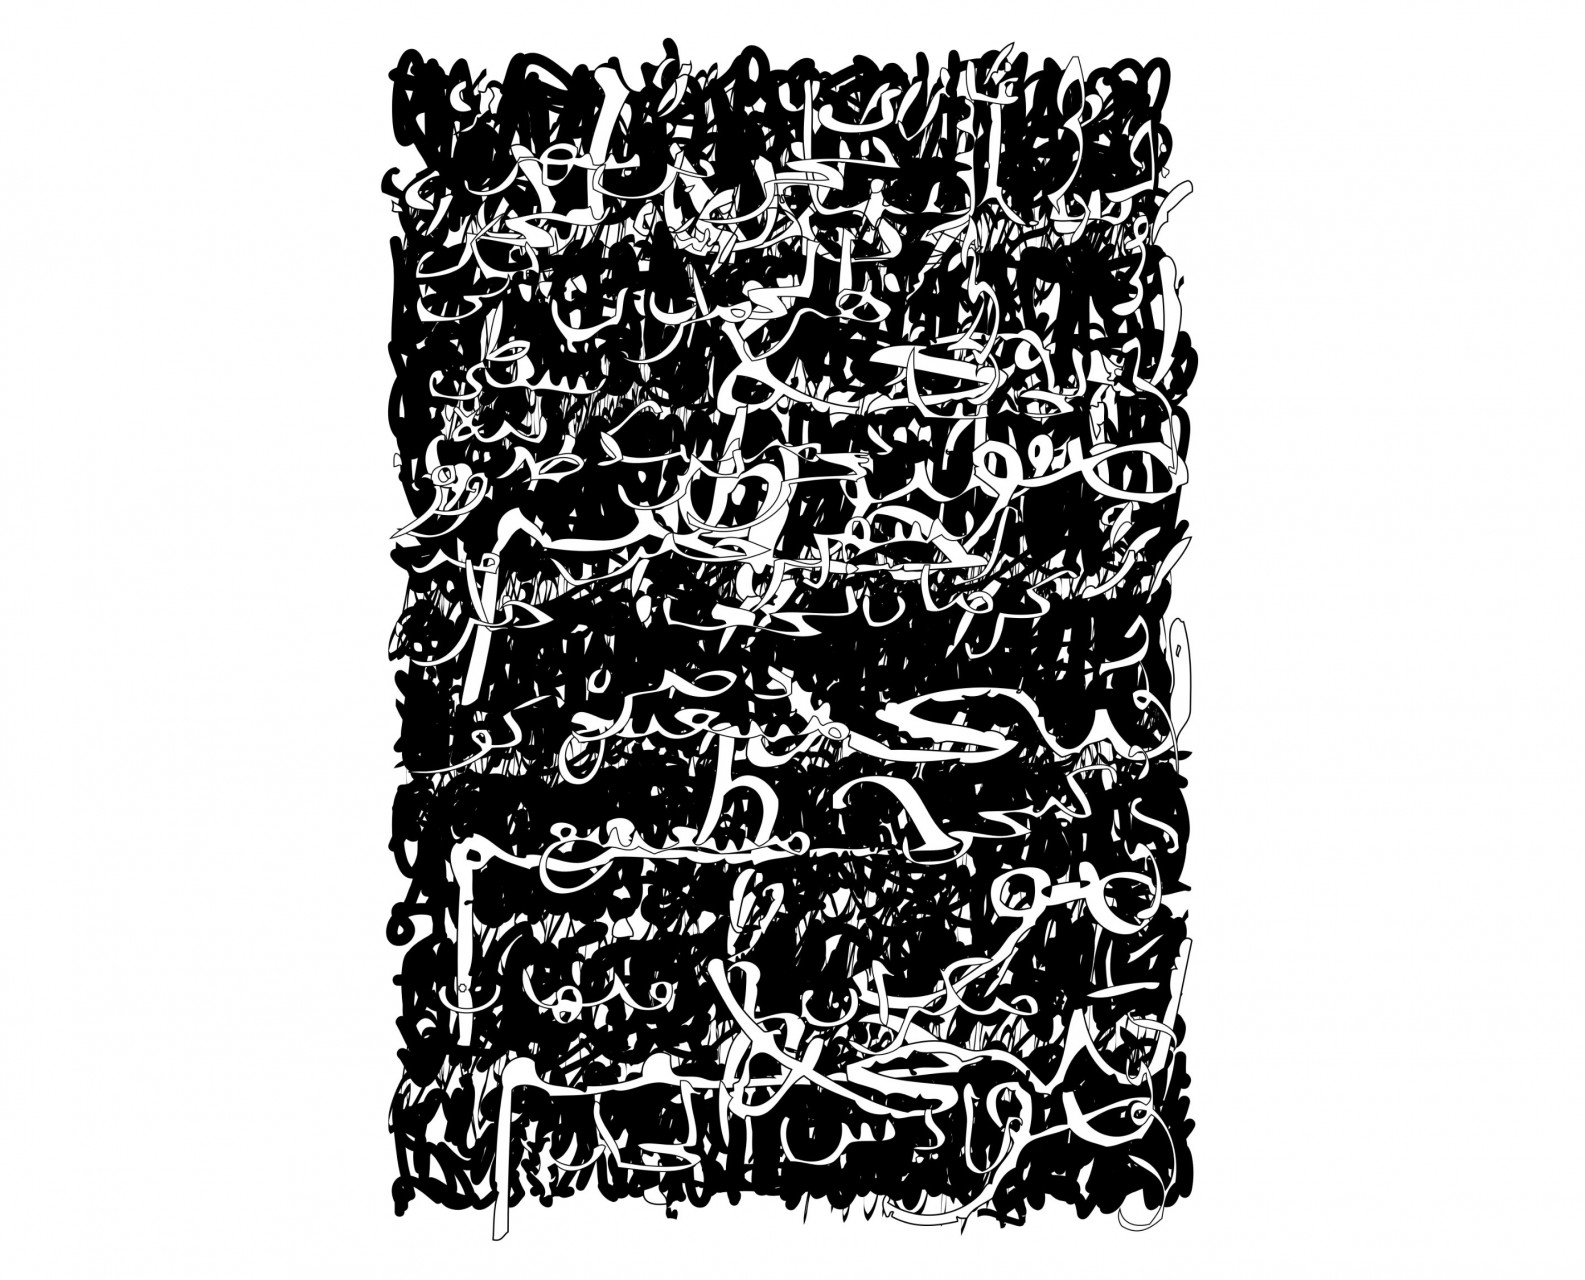 Palimpsest 015, cco-solvent ink on polyester, 137 x 205 cm, 2017